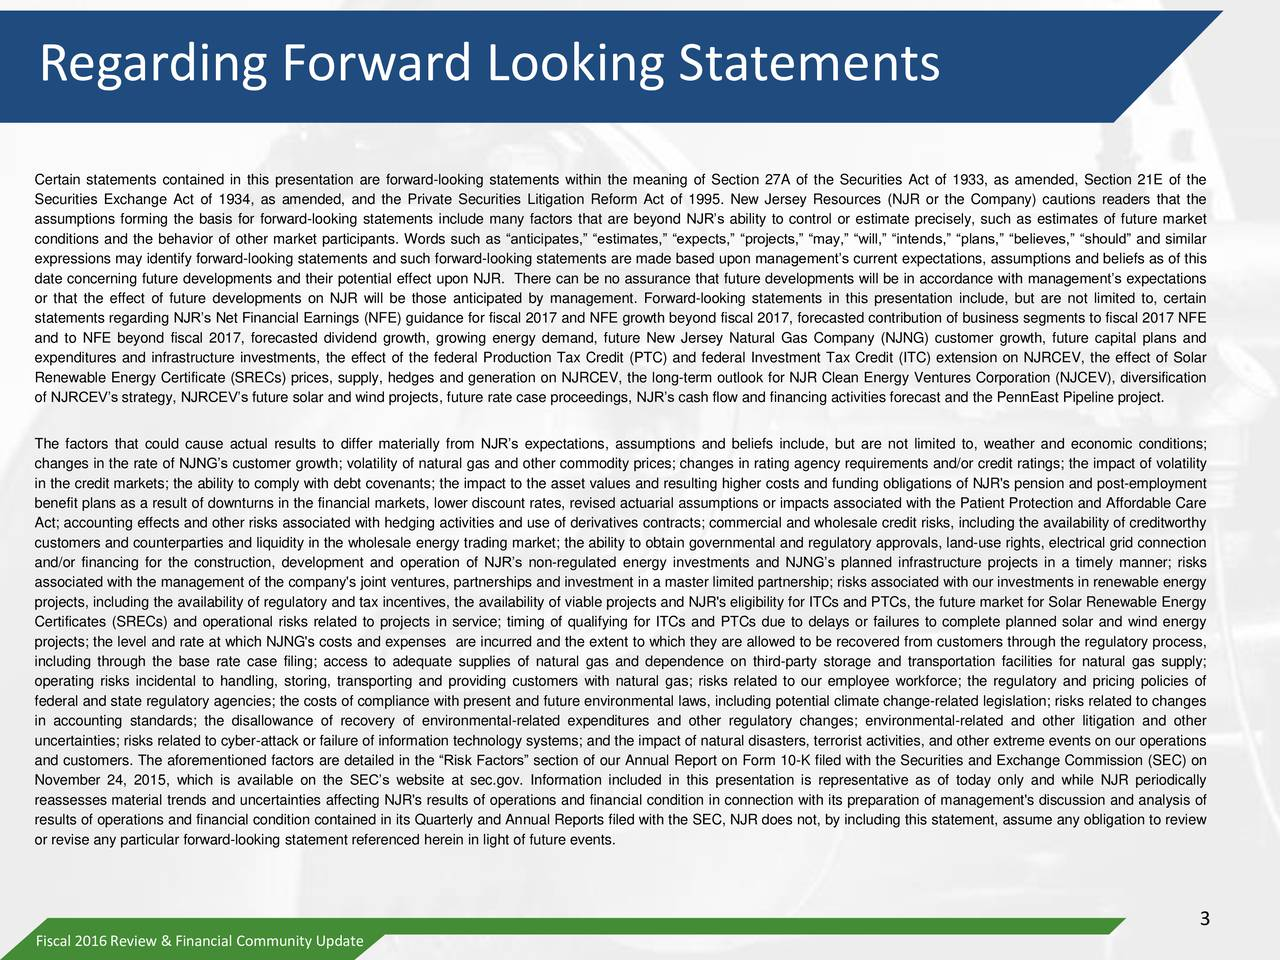 Certain statements contained in this presentation are forward-looking statements within the meaning of Section 27A of the Securities Act of 1933, as amended, Section 21E of the Securities Exchange Act of 1934, as amended, and the Private Securities Litigation Reform Act of 1995. New Jersey Resources (NJR or the Company) cautions readers that the assumptions forming the basis for forward-looking statements include many factors that are beyond NJRs ability to control or estimate precisely, such as estimates of future market conditions and the behavior of other market participants. Words such as anticipates, estimates, expects, projects, may, will, intends, plans, believes, should and similar expressions may identify forward-looking statements and such forward-looking statements are made based upon managements current expectations, assumptions and beliefs as of this date concerning future developments and their potential effect upon NJR. There can be no assurance that future developments will be in accordance with managements expectations or that the effect of future developments on NJR will be those anticipated by management. Forward-looking statements in this presentation include, but are not limited to, certain statements regarding NJRs Net Financial Earnings (NFE) guidance for fiscal 2017 and NFE growth beyond fiscal 2017, forecasted contribution of business segments to fiscal 2017 NFE and to NFE beyond fiscal 2017, forecasted dividend growth, growing energy demand, future New Jersey Natural Gas Company (NJNG) customer growth, future capital plans and expenditures and infrastructure investments, the effect of the federal Production Tax Credit (PTC) and federal Investment Tax Credit (ITC) extension on NJRCEV, the effect of Solar Renewable Energy Certificate (SRECs) prices, supply, hedges and generation on NJRCEV, the long-term outlook for NJR Clean Energy Ventures Corporation (NJCEV), diversification of NJRCEVs strategy, NJRCEVs future solar and wind projects, futur